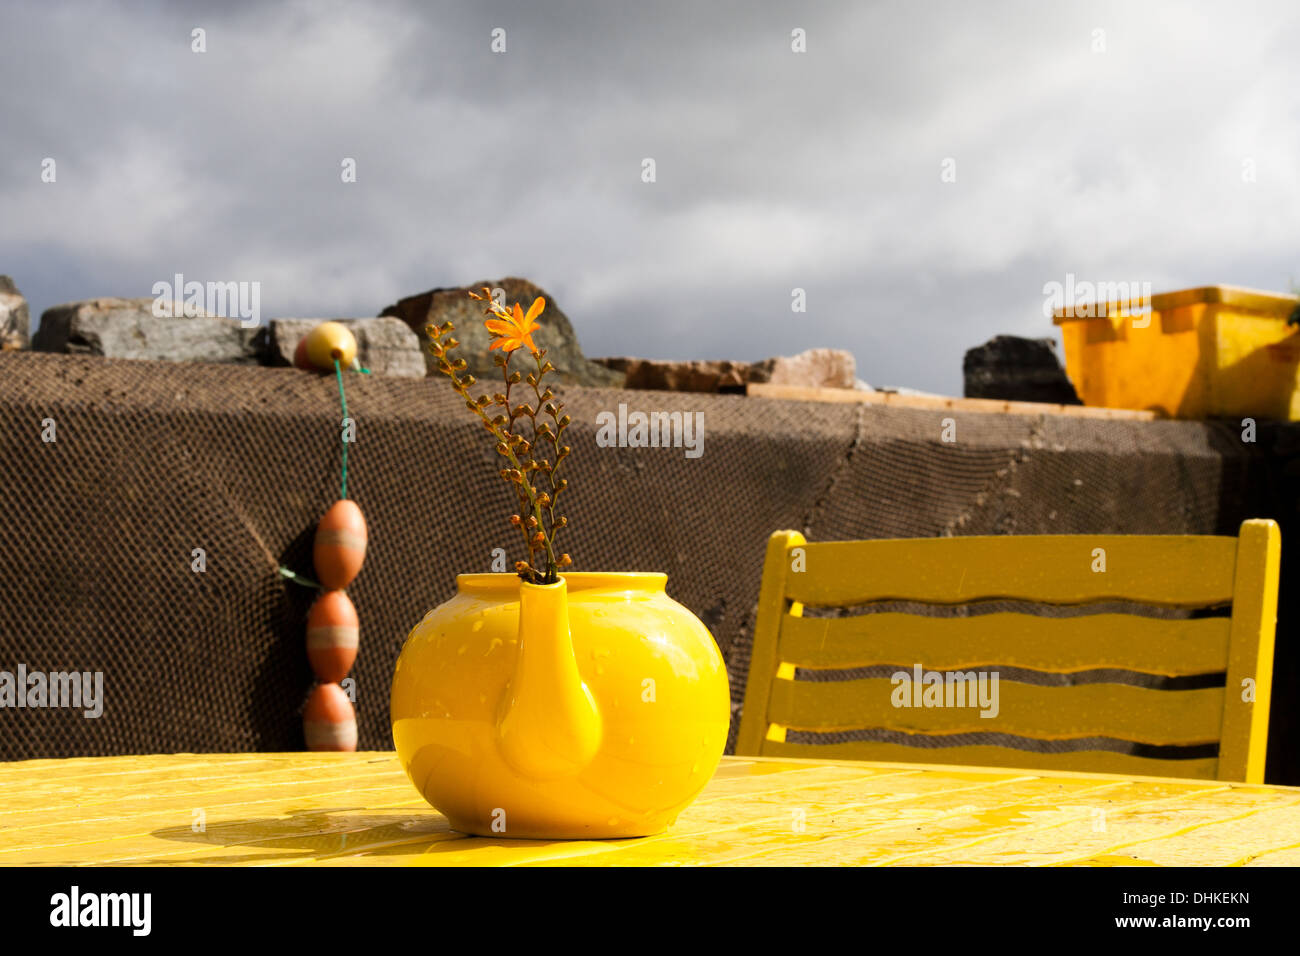 Yellow teapot chair and table at a cafe in the west of Ireland - Stock Image